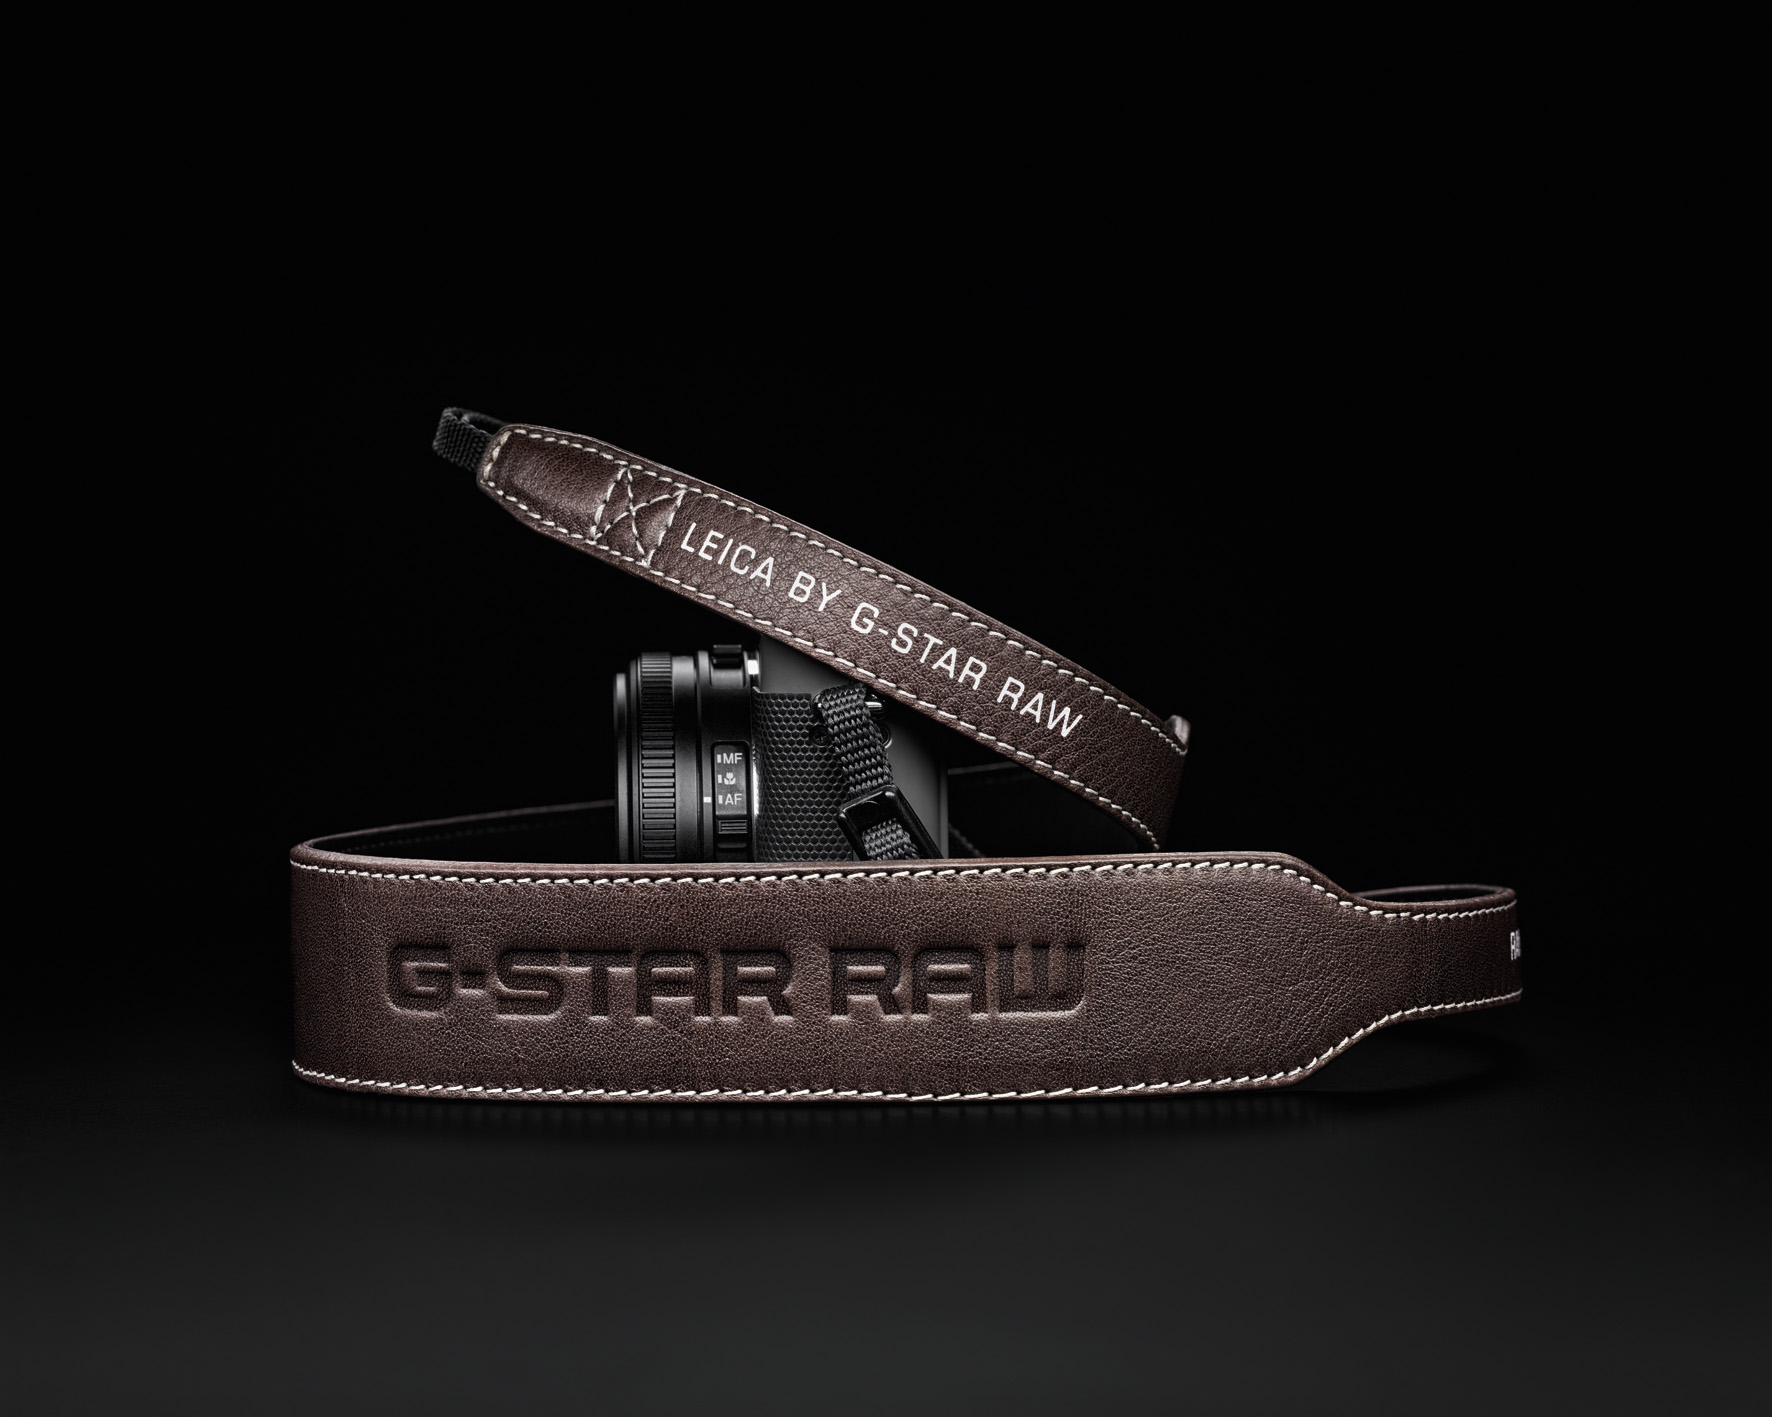 Leica D-Lux 6 G-Star_carrying strap_1